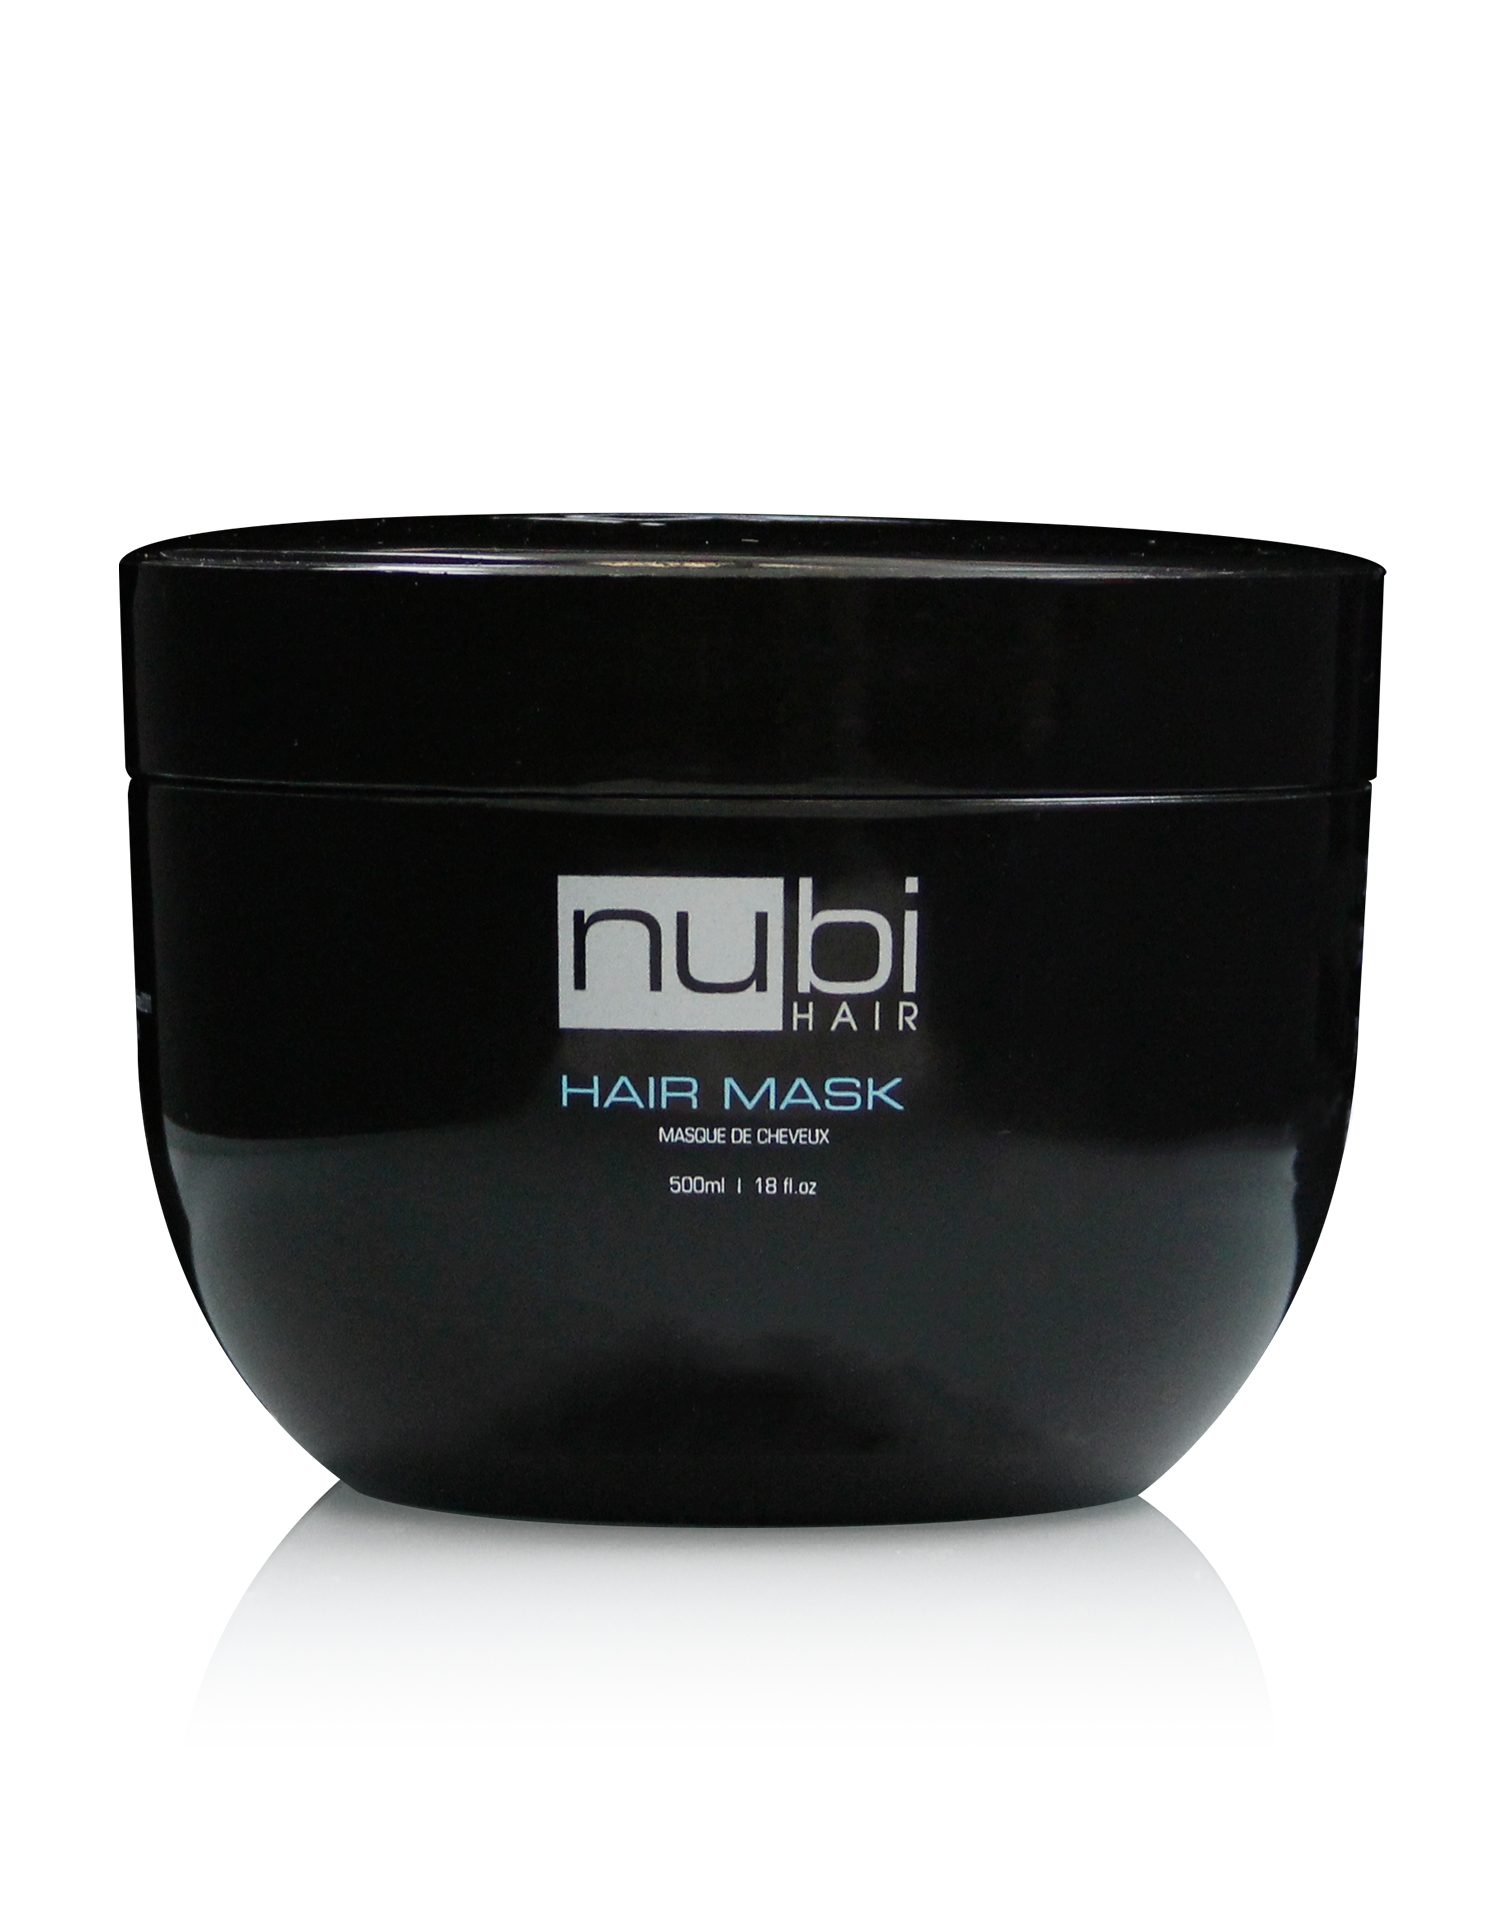 nubi hair care mask